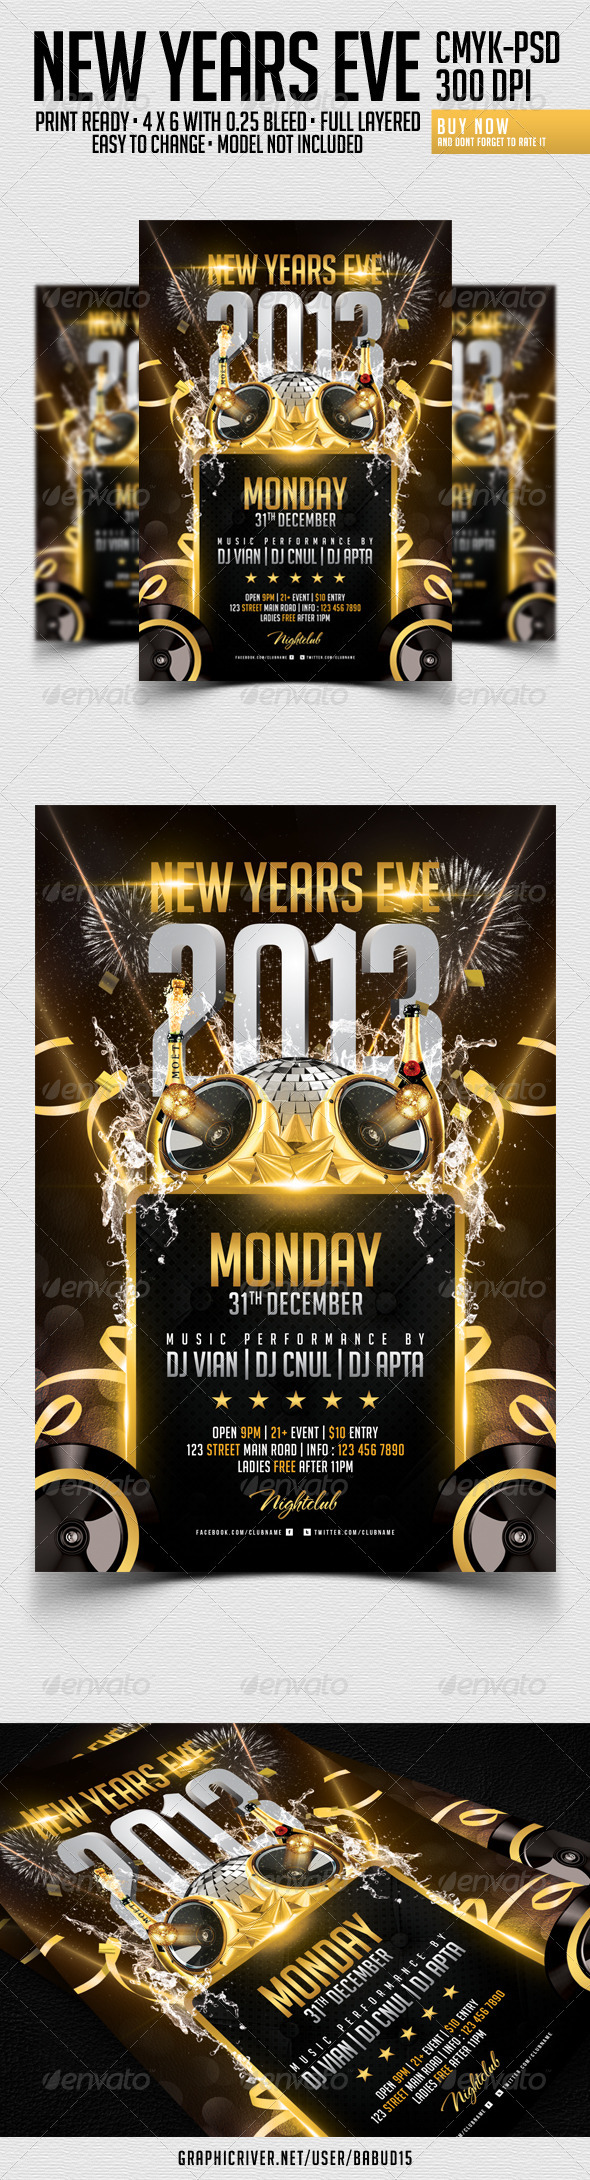 GraphicRiver New Years Eve Flyer Template 3525127